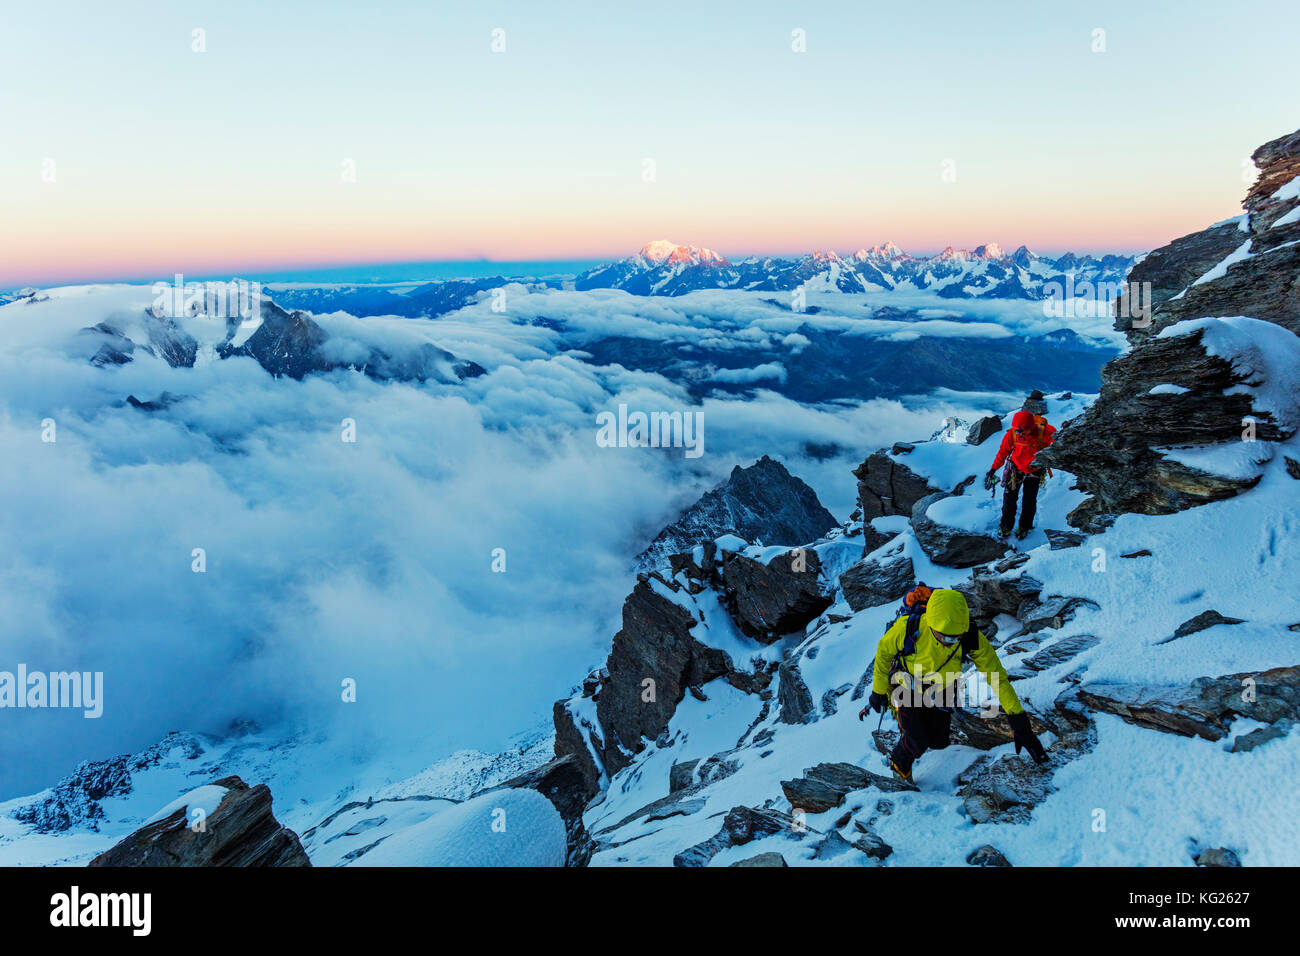 Sunrise view to Mont Blanc in France from Grand Combin, Valais, Swiss Alps, Switzerland, Europe - Stock Image